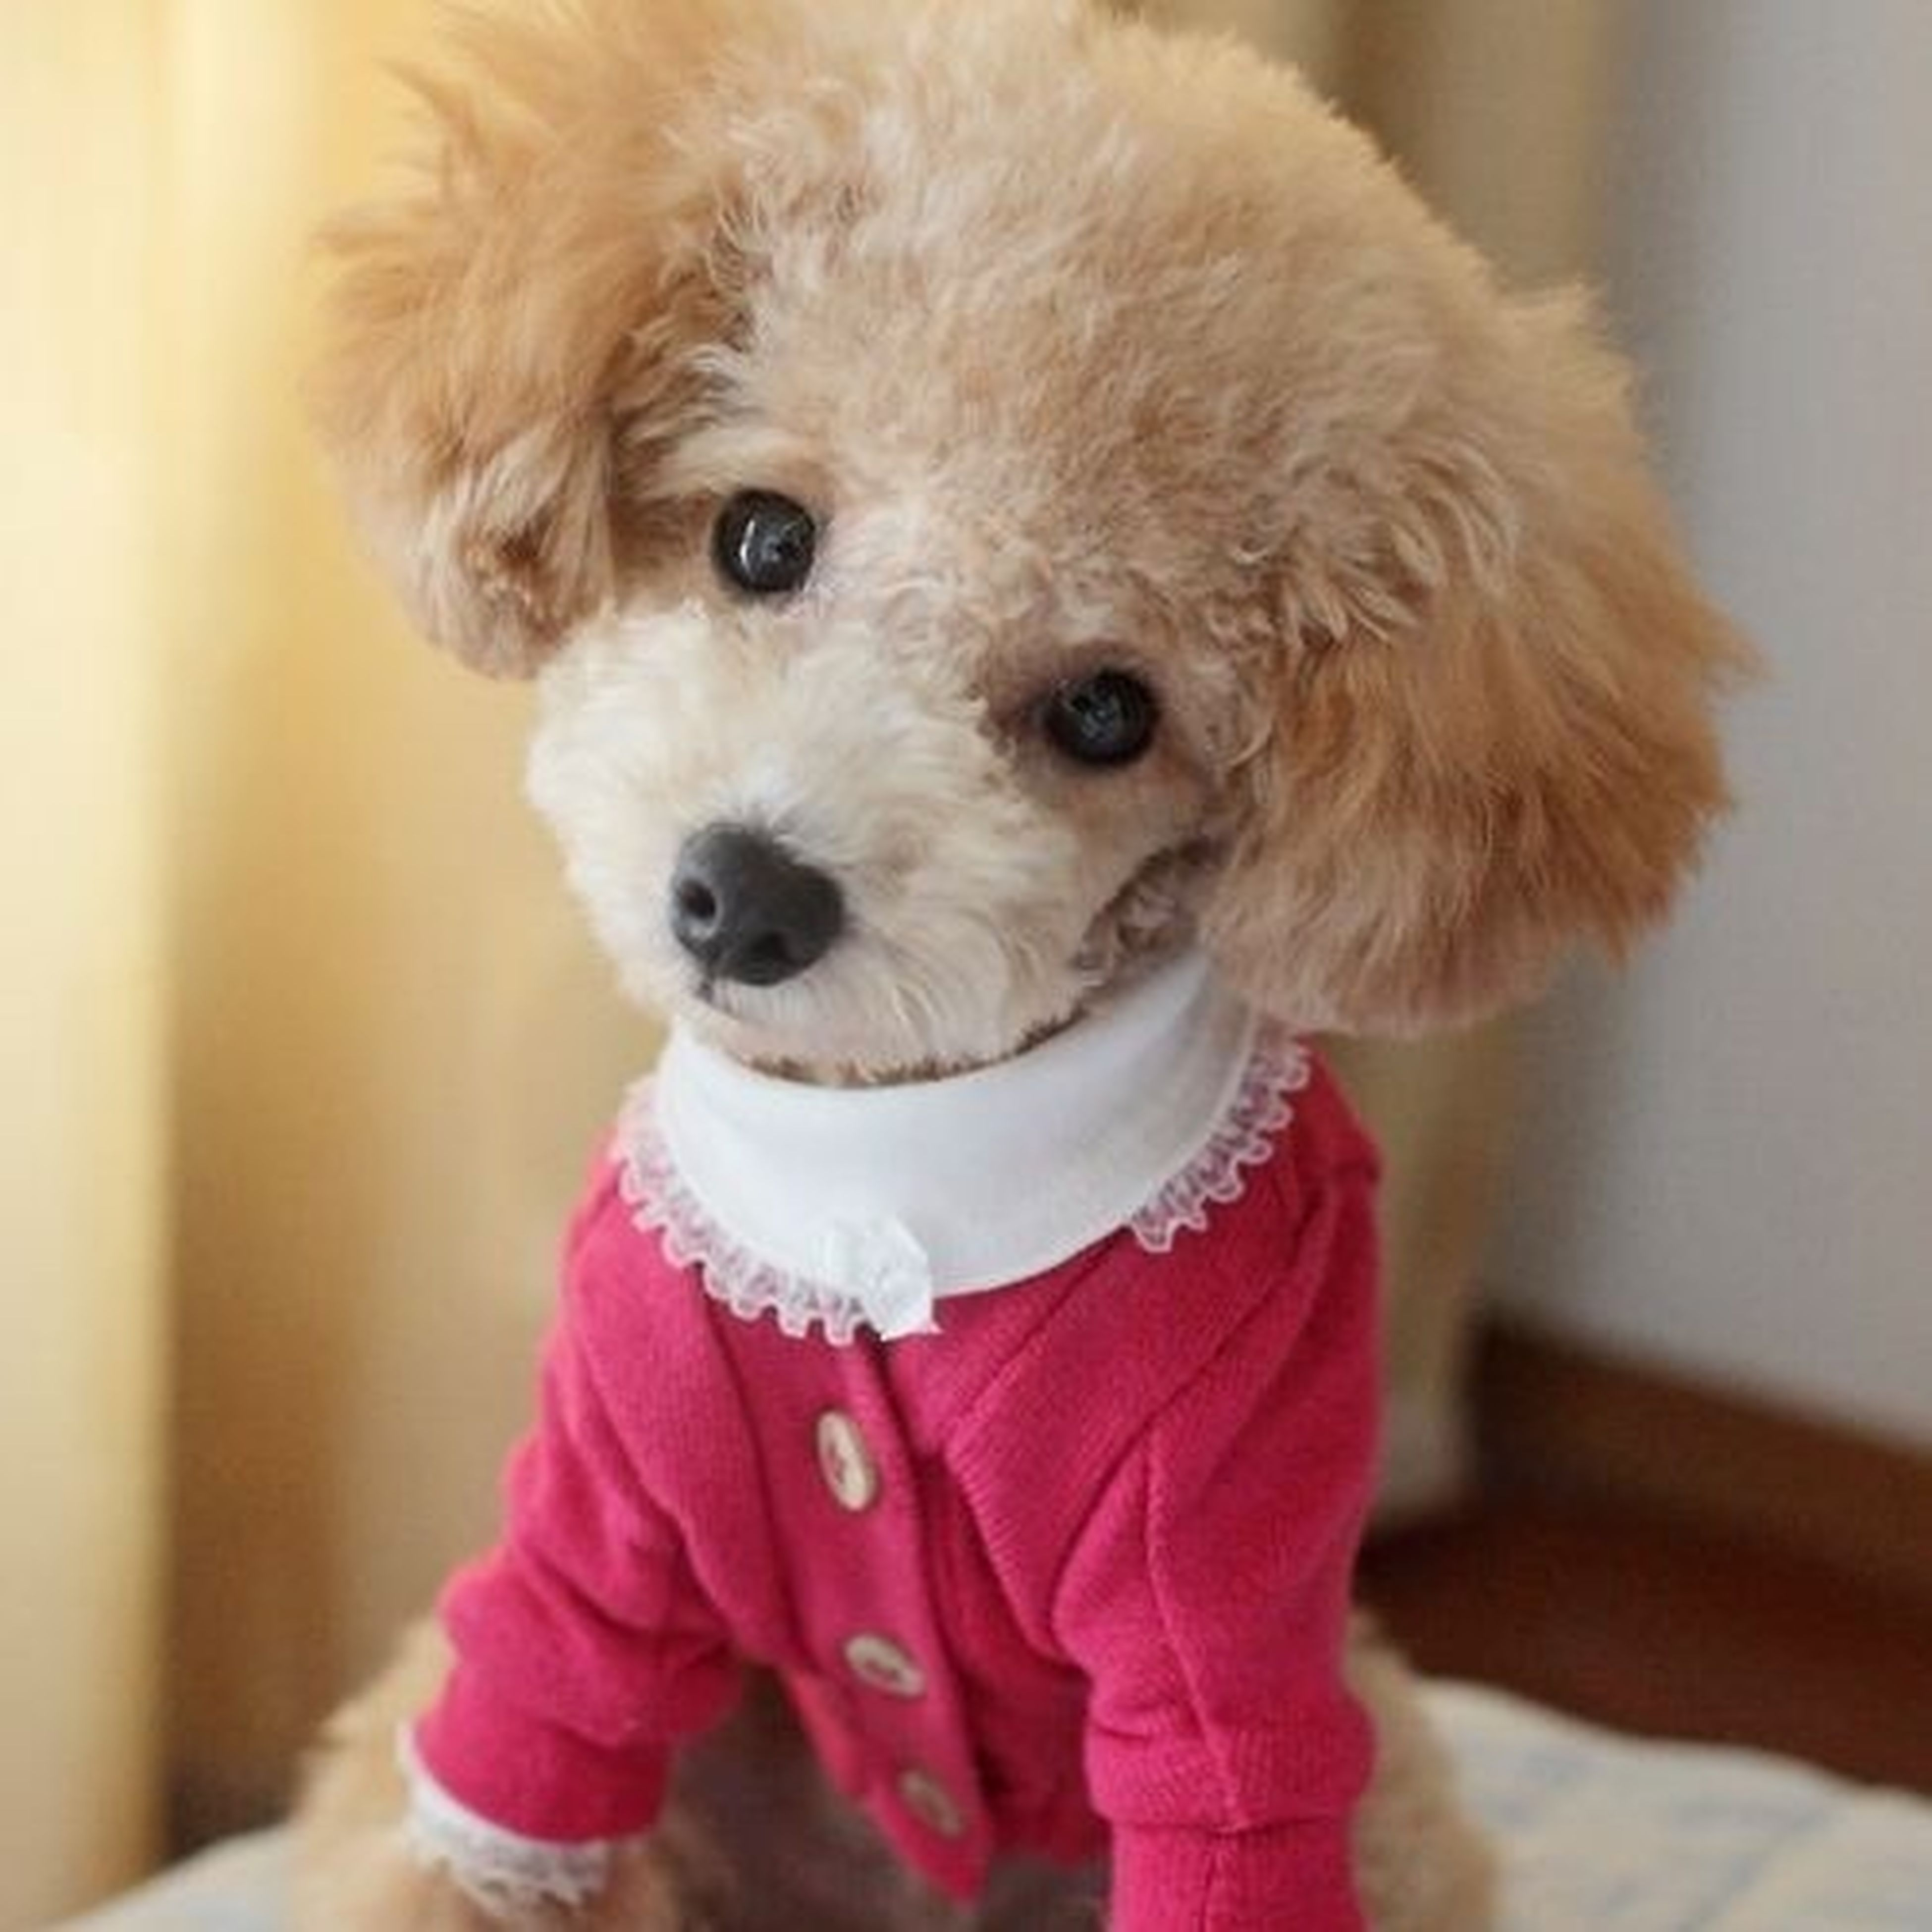 pets, dog, indoors, one animal, focus on foreground, cute, animal themes, portrait, looking at camera, domestic animals, innocence, childhood, lifestyles, holding, front view, standing, leisure activity